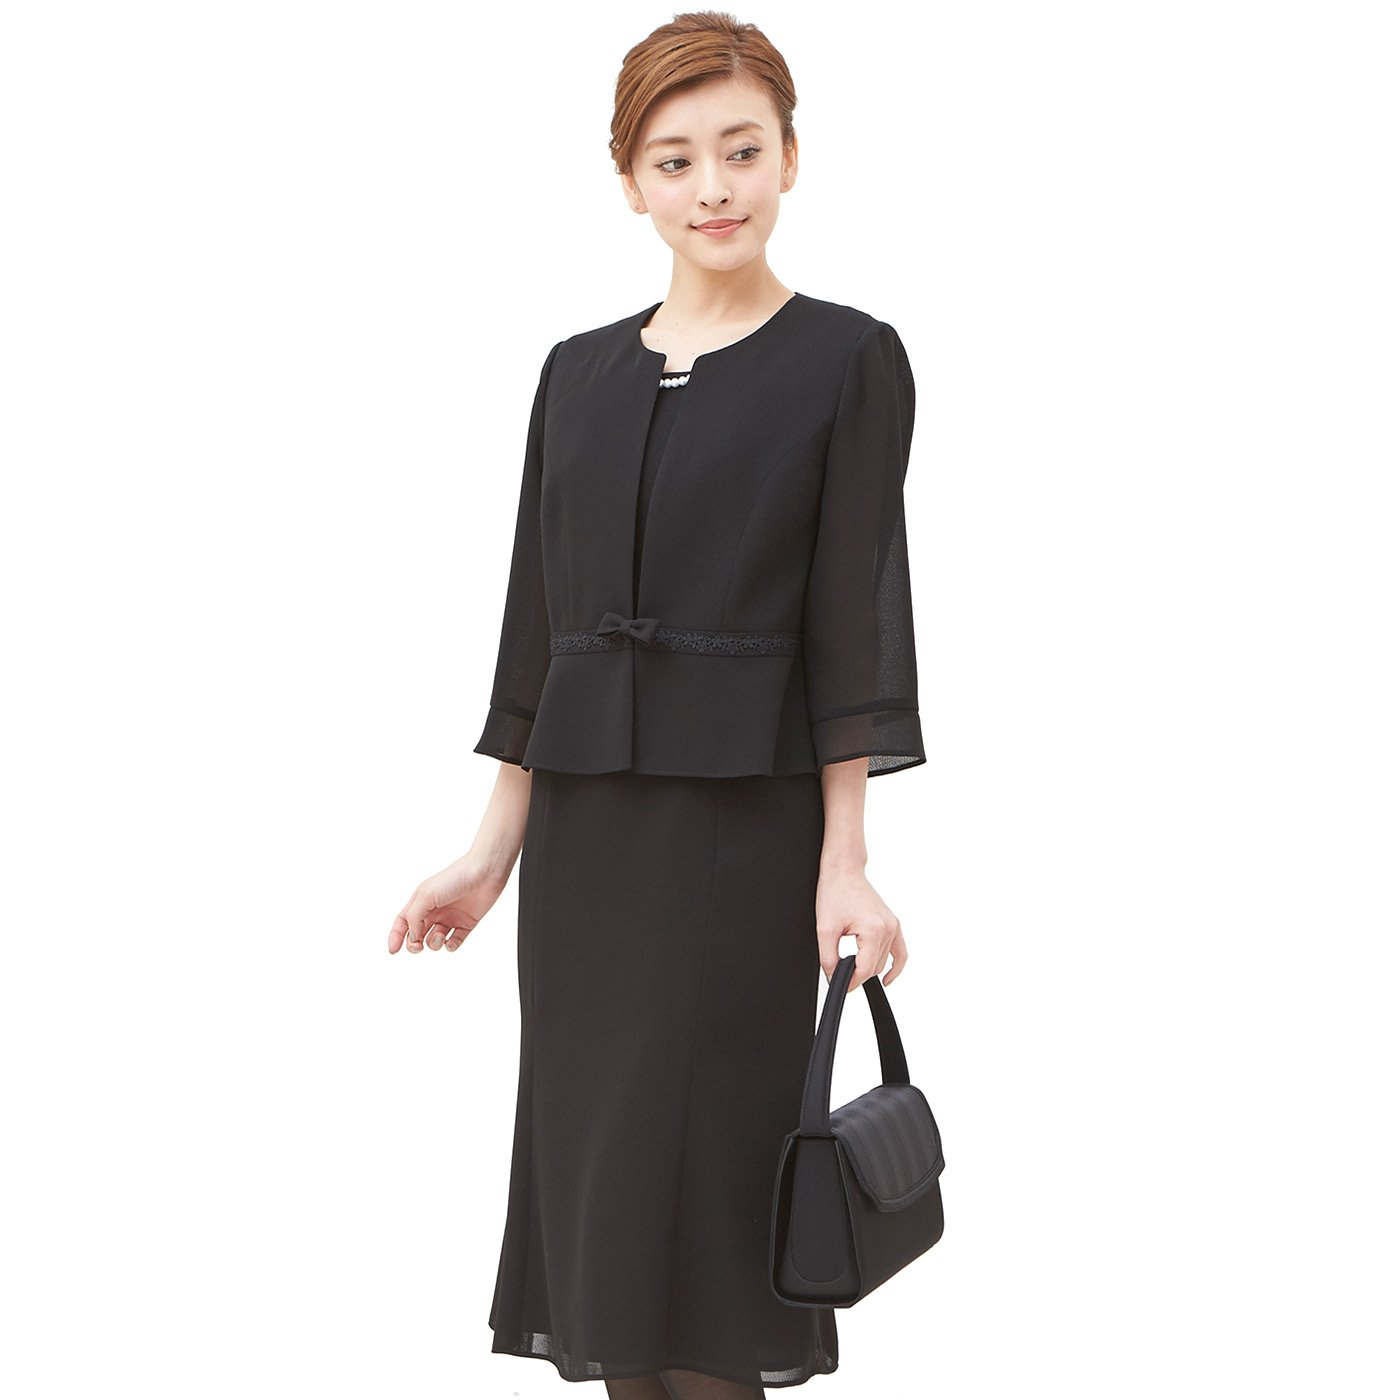 SORITEAL Black Label Women's (Altamoda) Correspond To Washable Summer One Piece Looks Like Suit 13AR Black